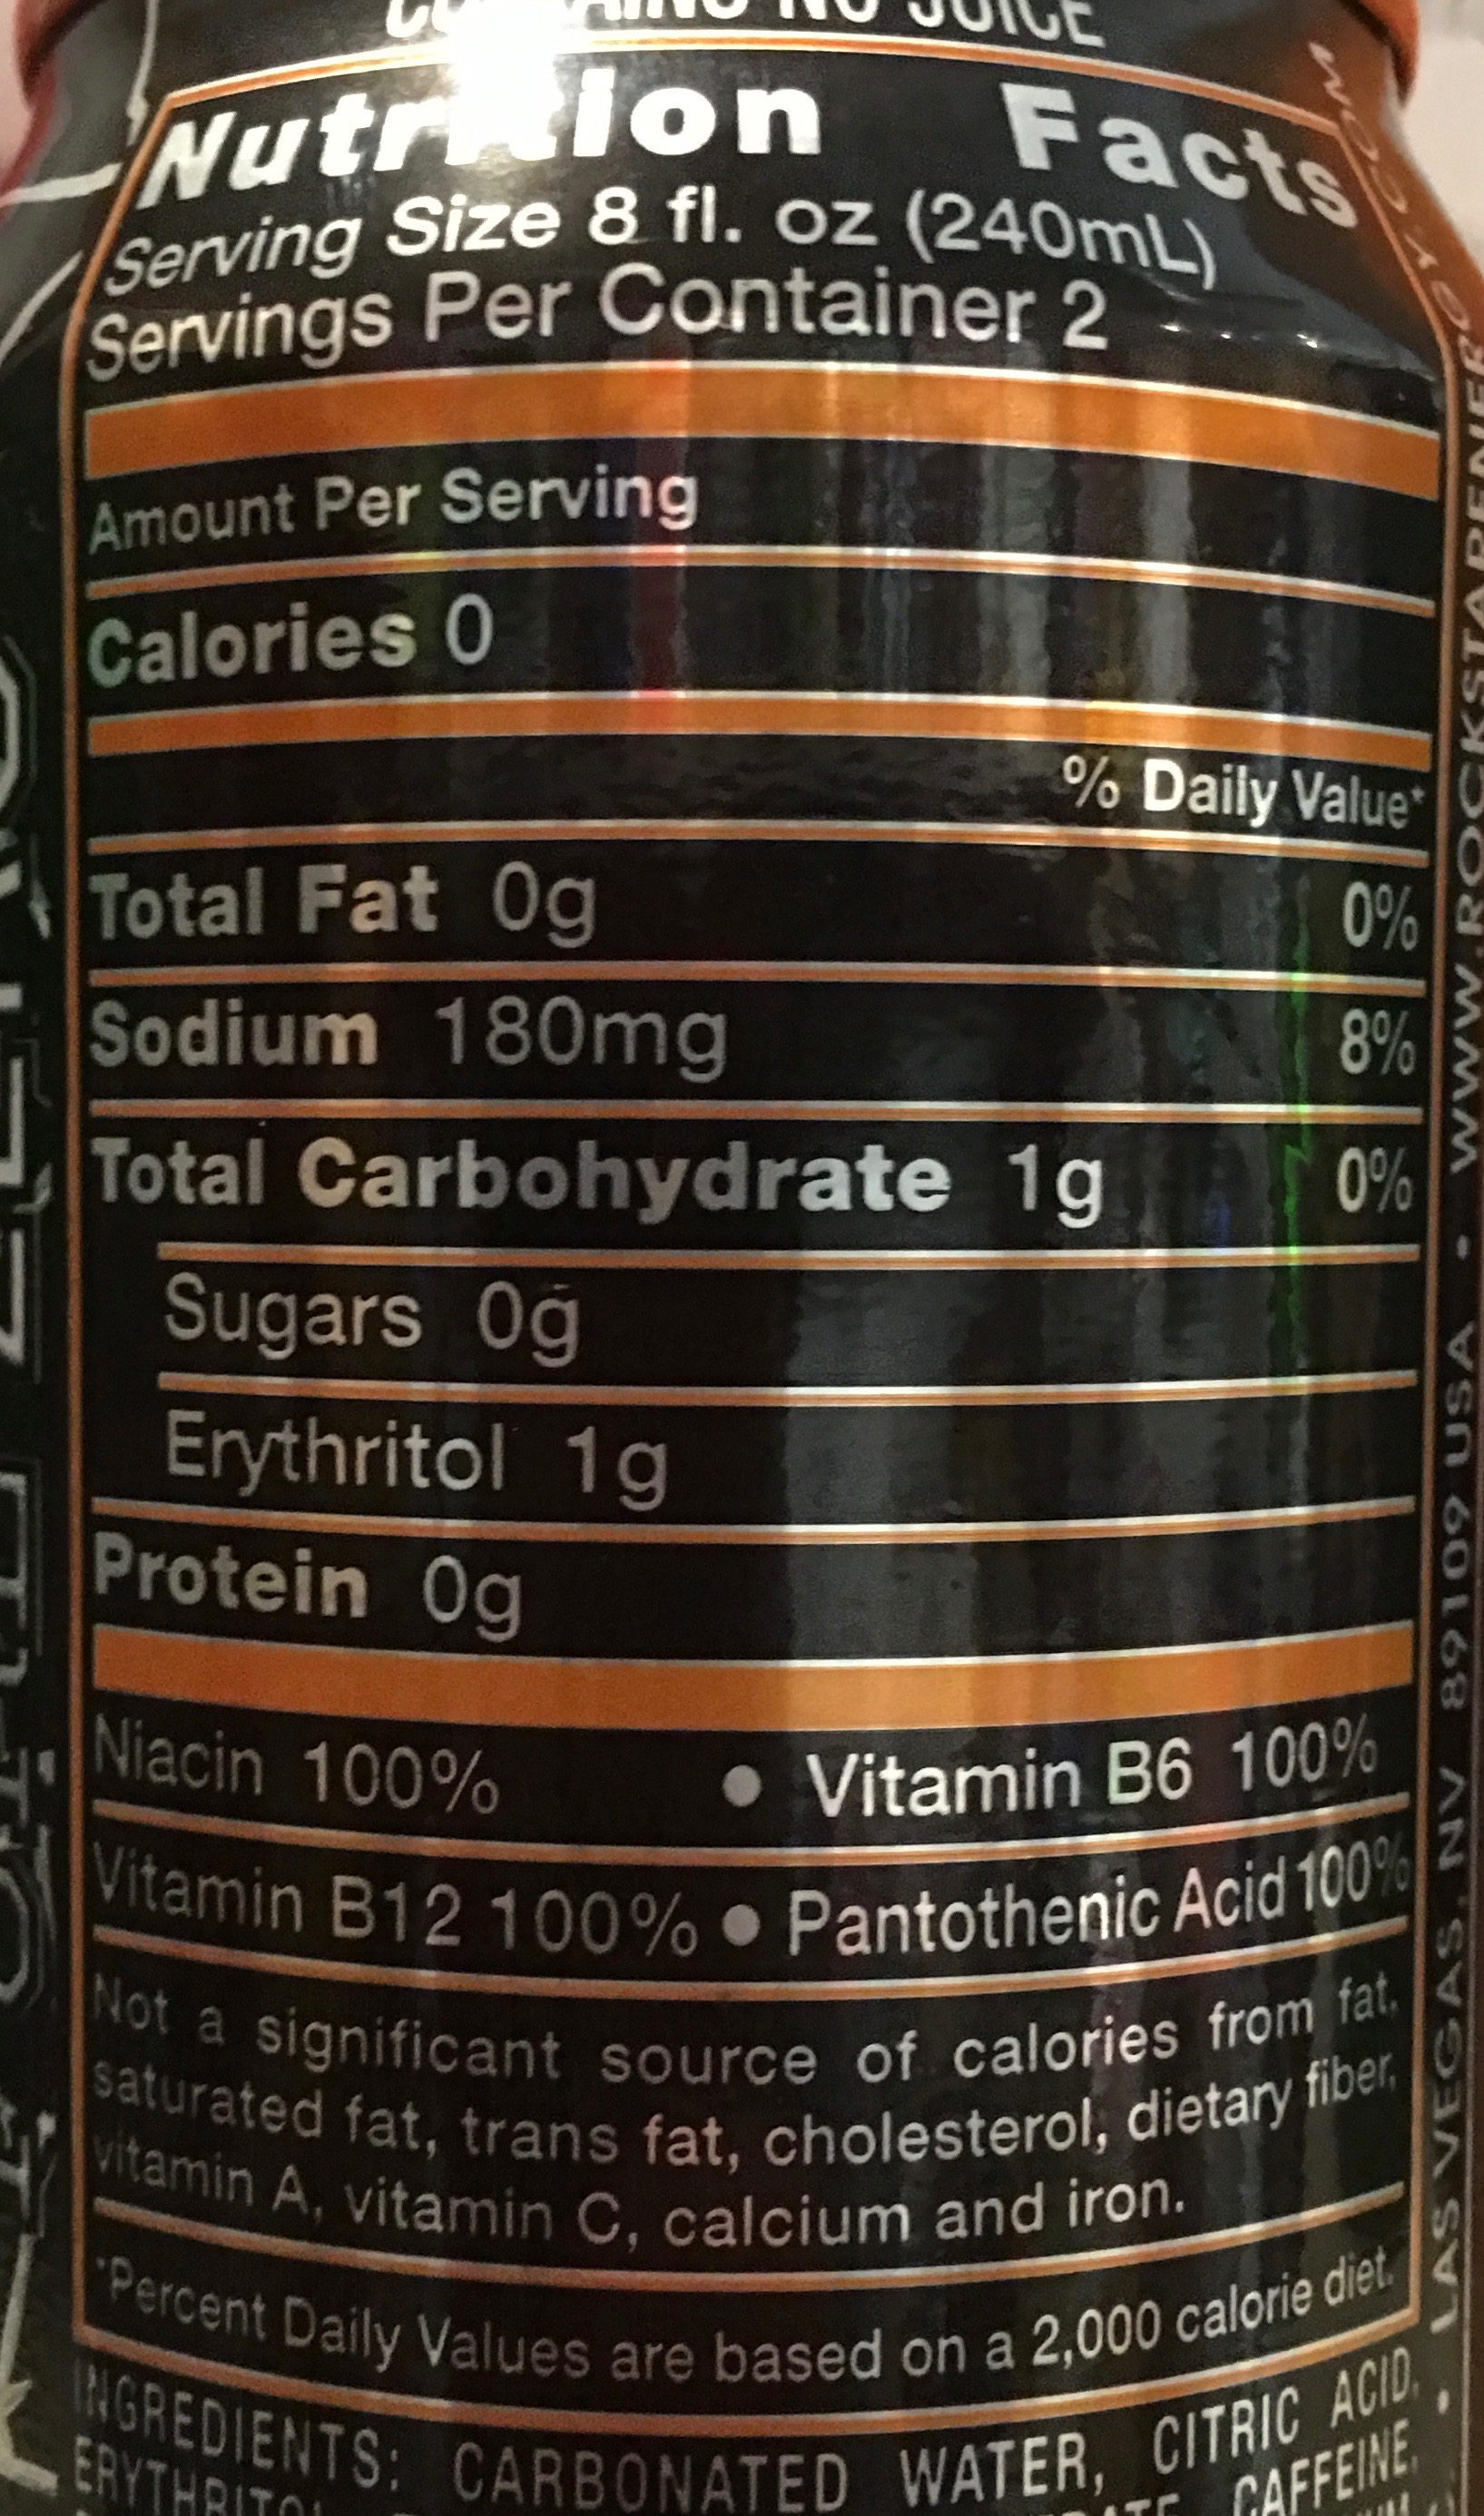 Rockstar Energy Drink Nutrition Facts